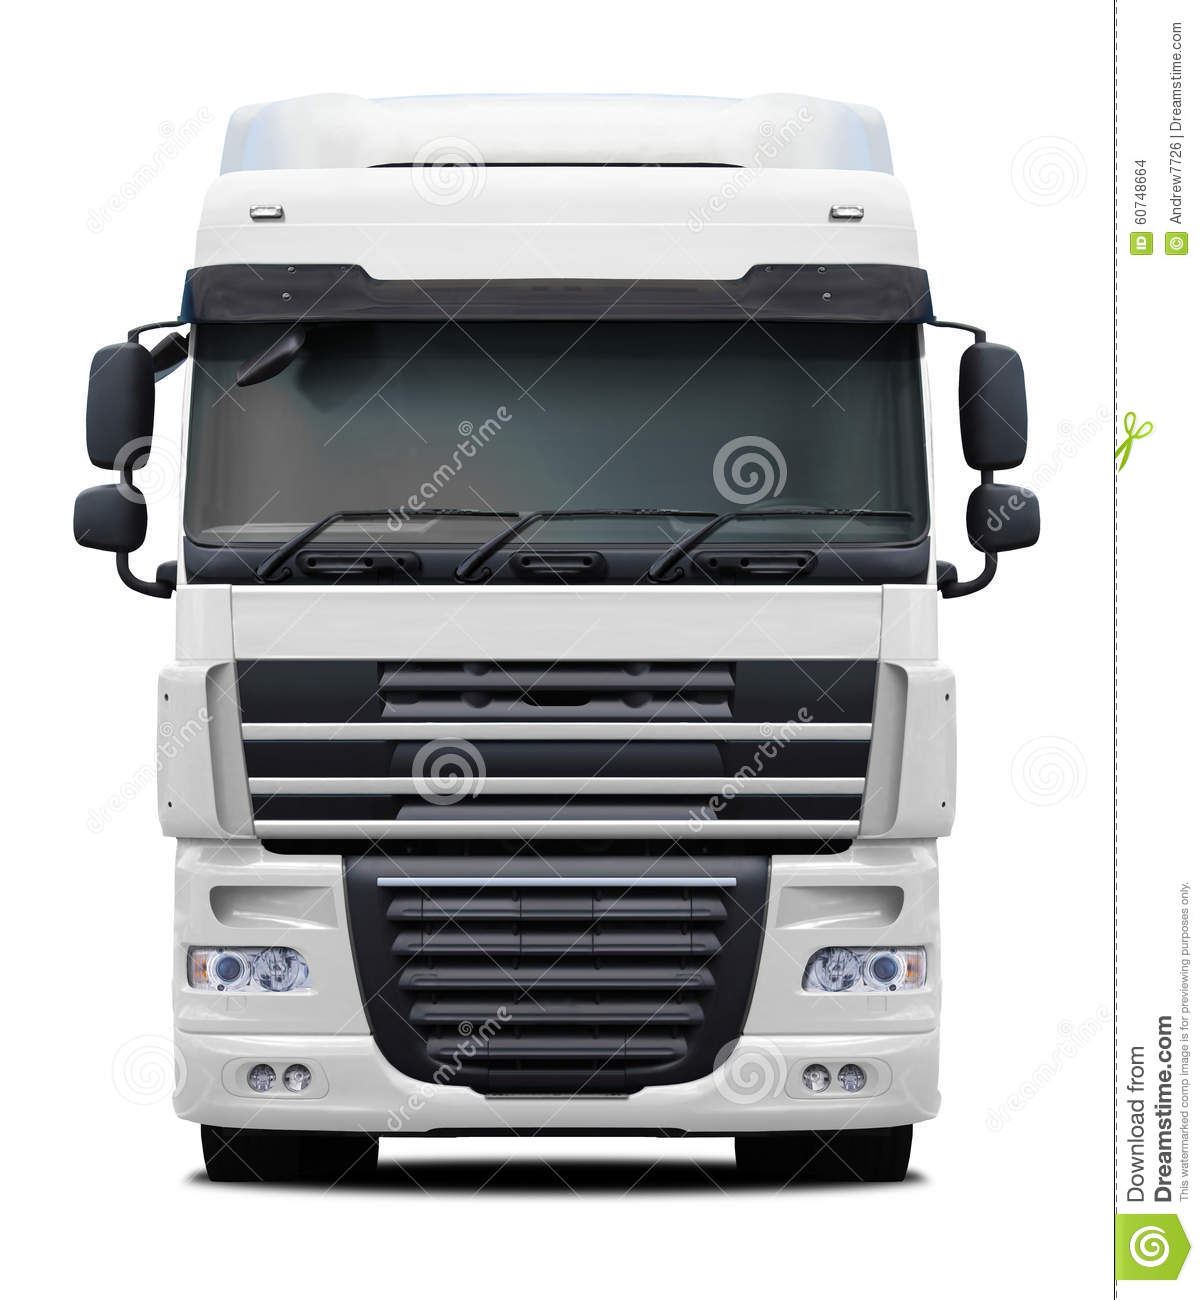 Watch together with 2018 furthermore Watch together with Big Truck Wallpaper moreover Walk Behind Tractors. on semi tractor trailer truck